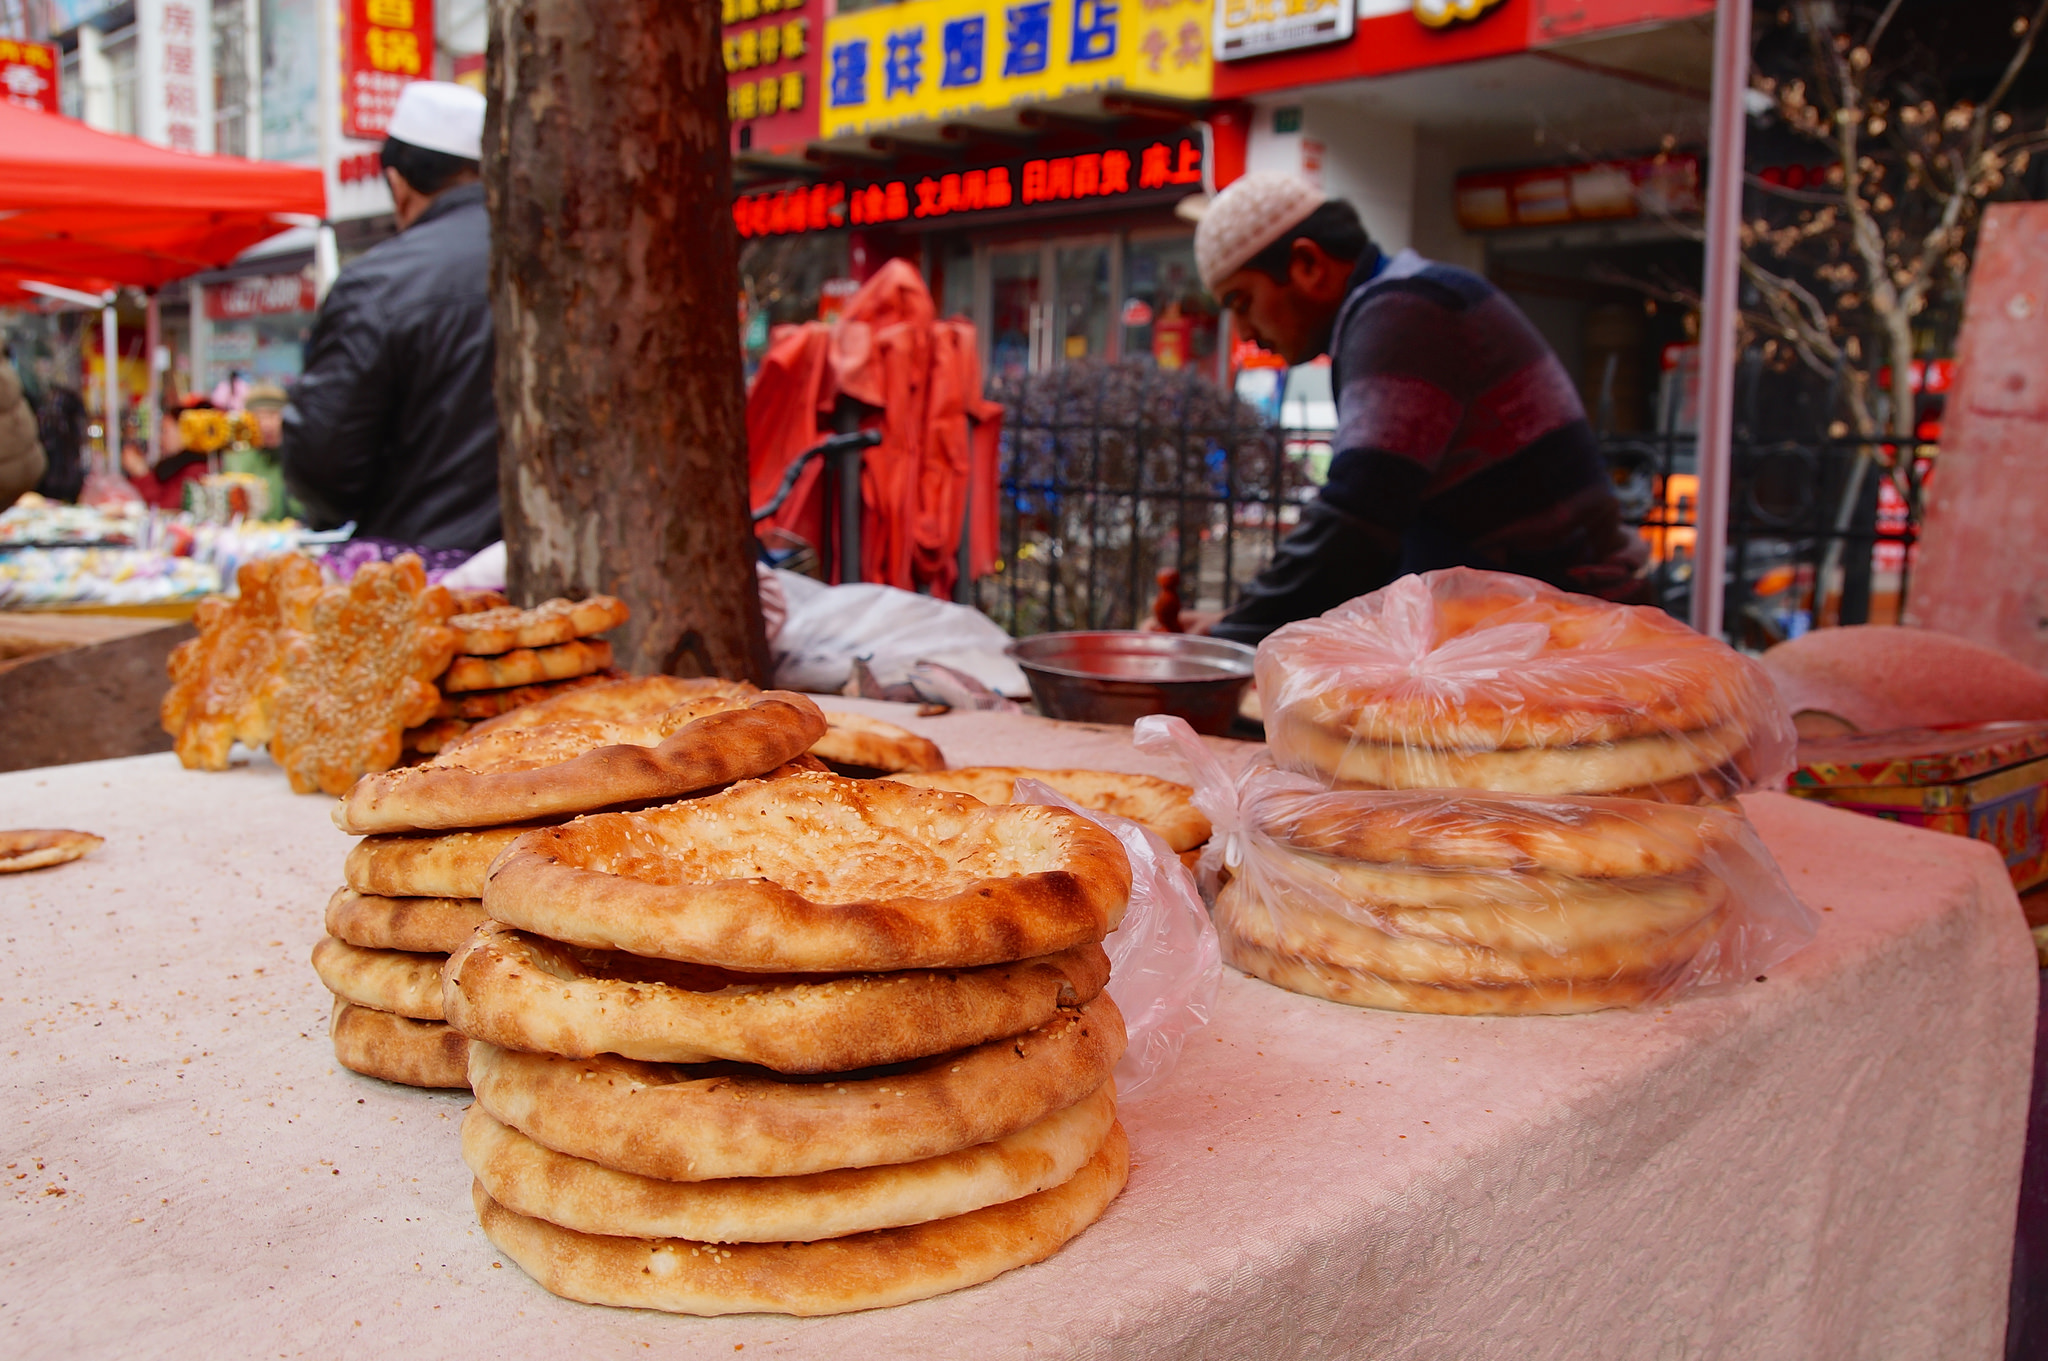 Naan at the Shanghai Muslim Market | ©Mathias Apitz/Flickr